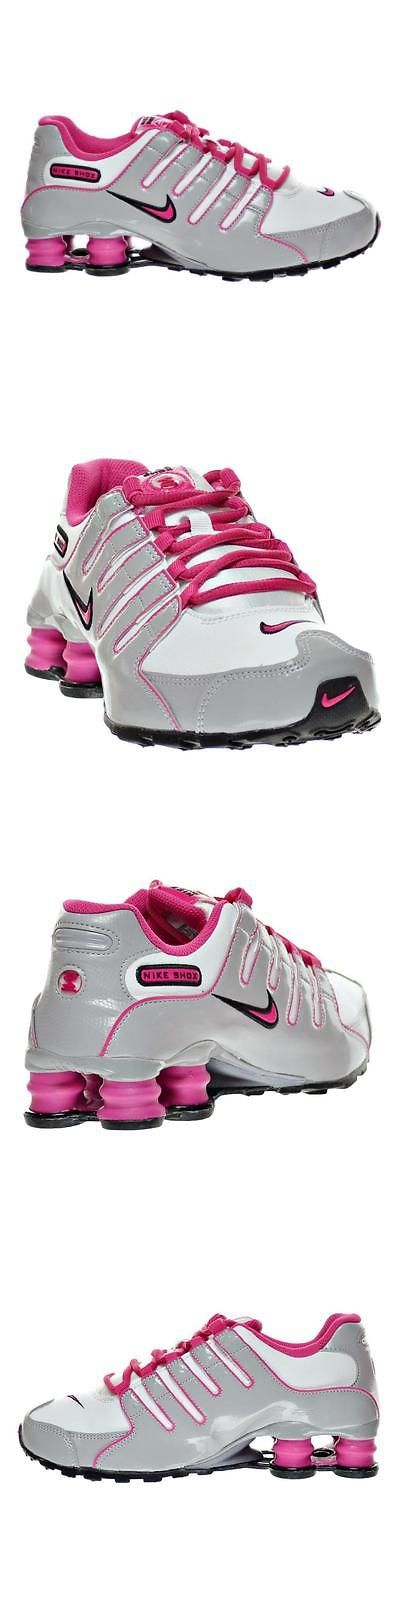 Youth 158954: Nike Shox Nz Running Jogging Walking Shoes Size 6.5 Youth White Gray (8 Womens) -> BUY IT NOW ONLY: $100 on eBay!